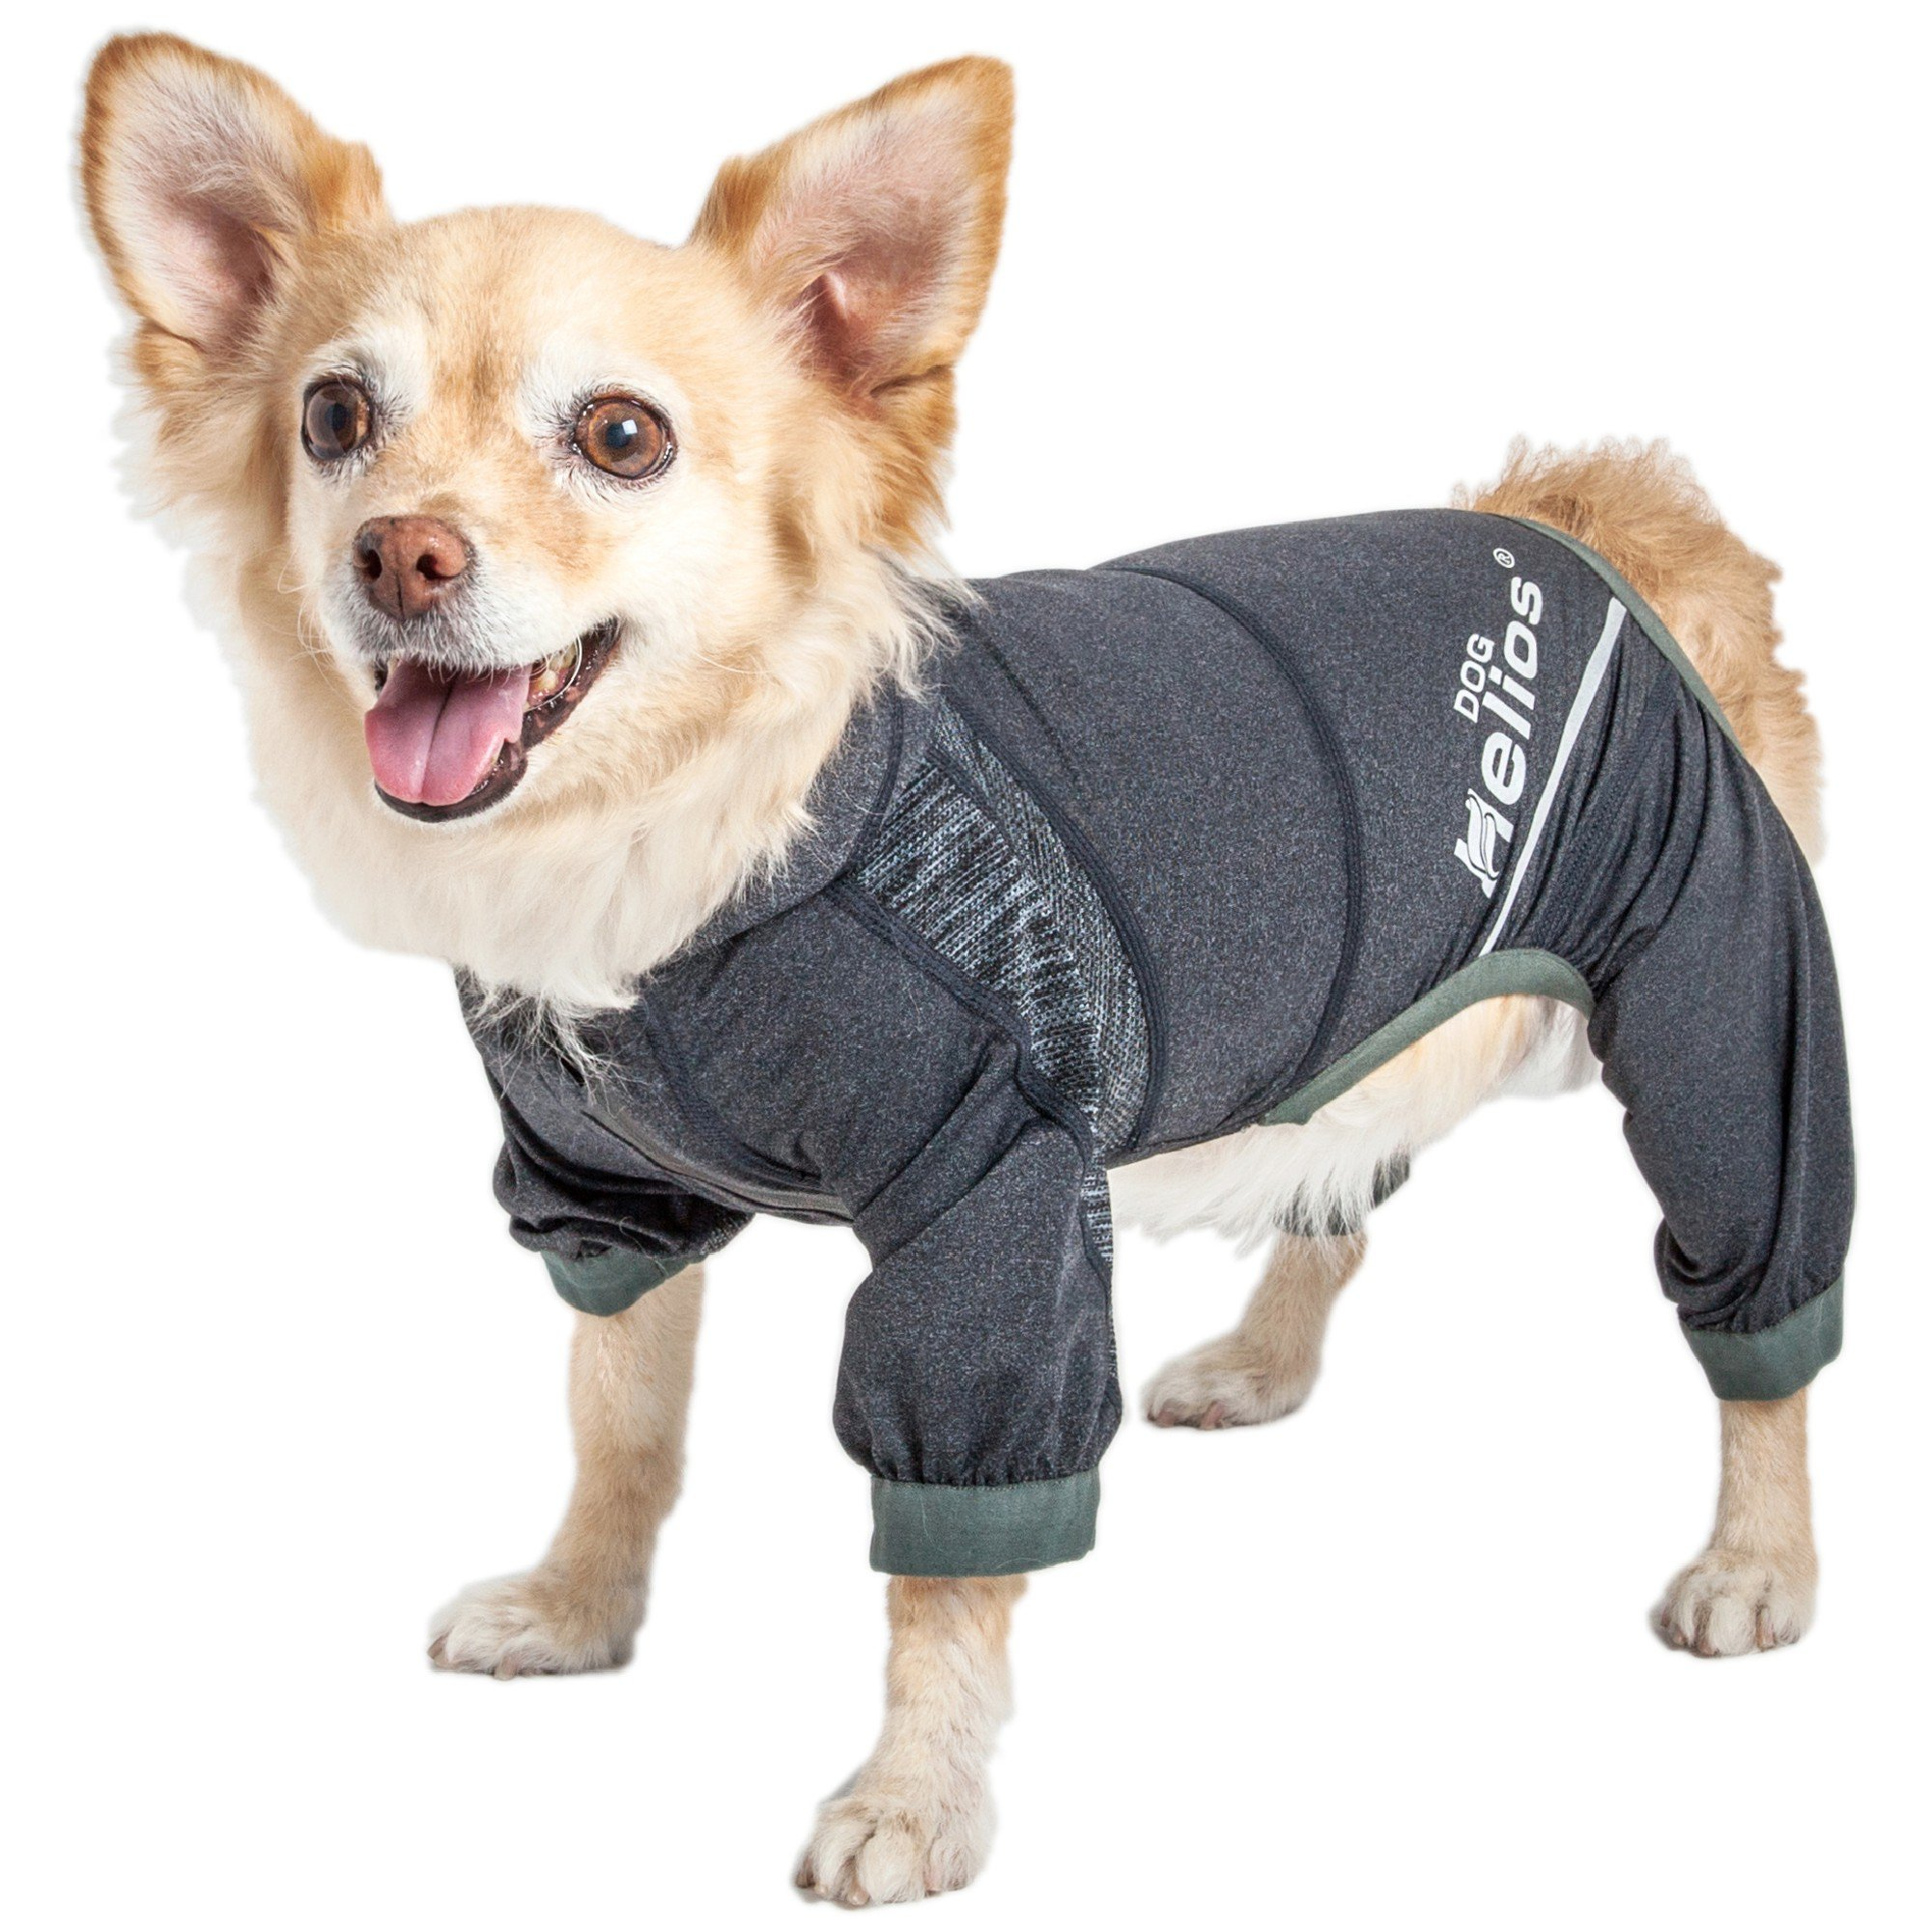 Dog Helios Namastail Lightweight Black Dog Hoodie Tracksuit, Medium